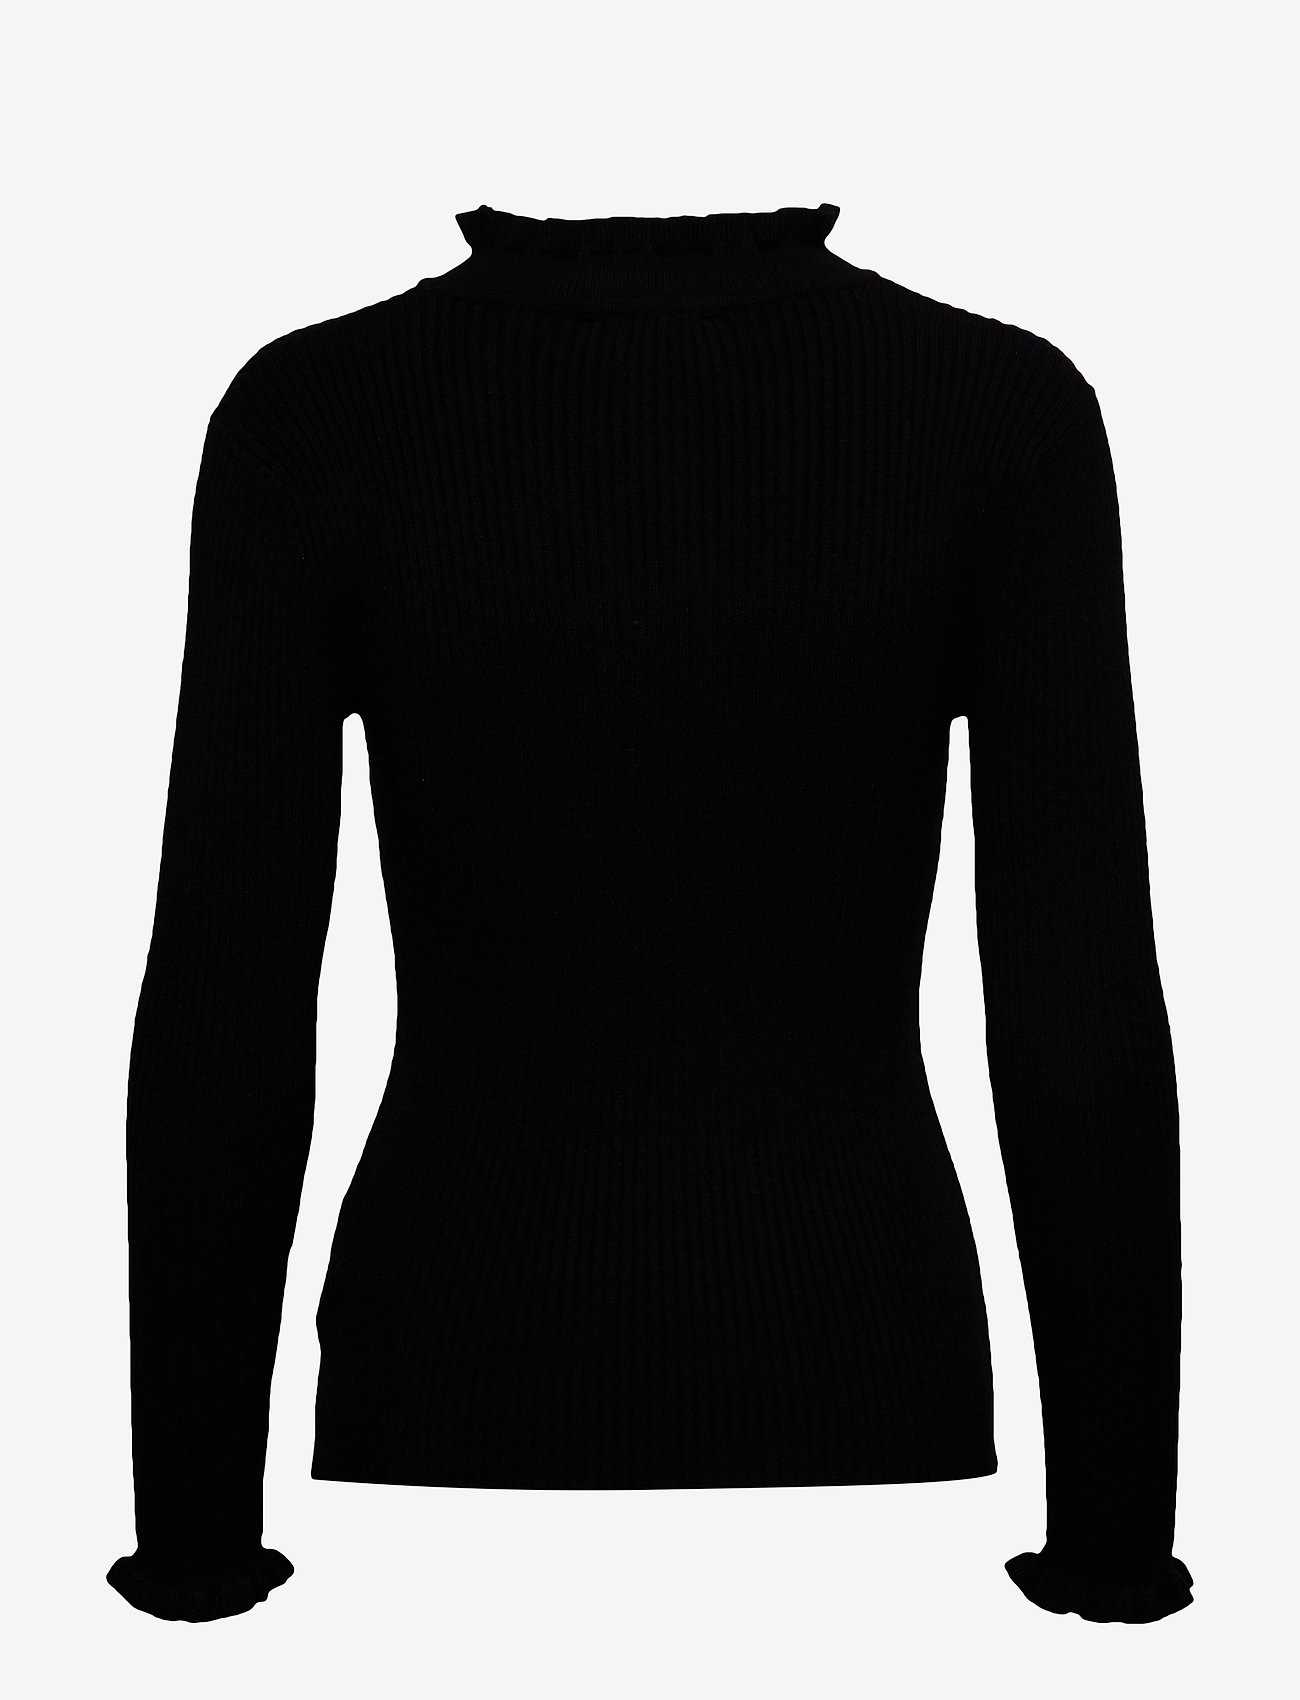 Helena Pullover (Pitch Black) (44.96 €) - Cream Fn1YV